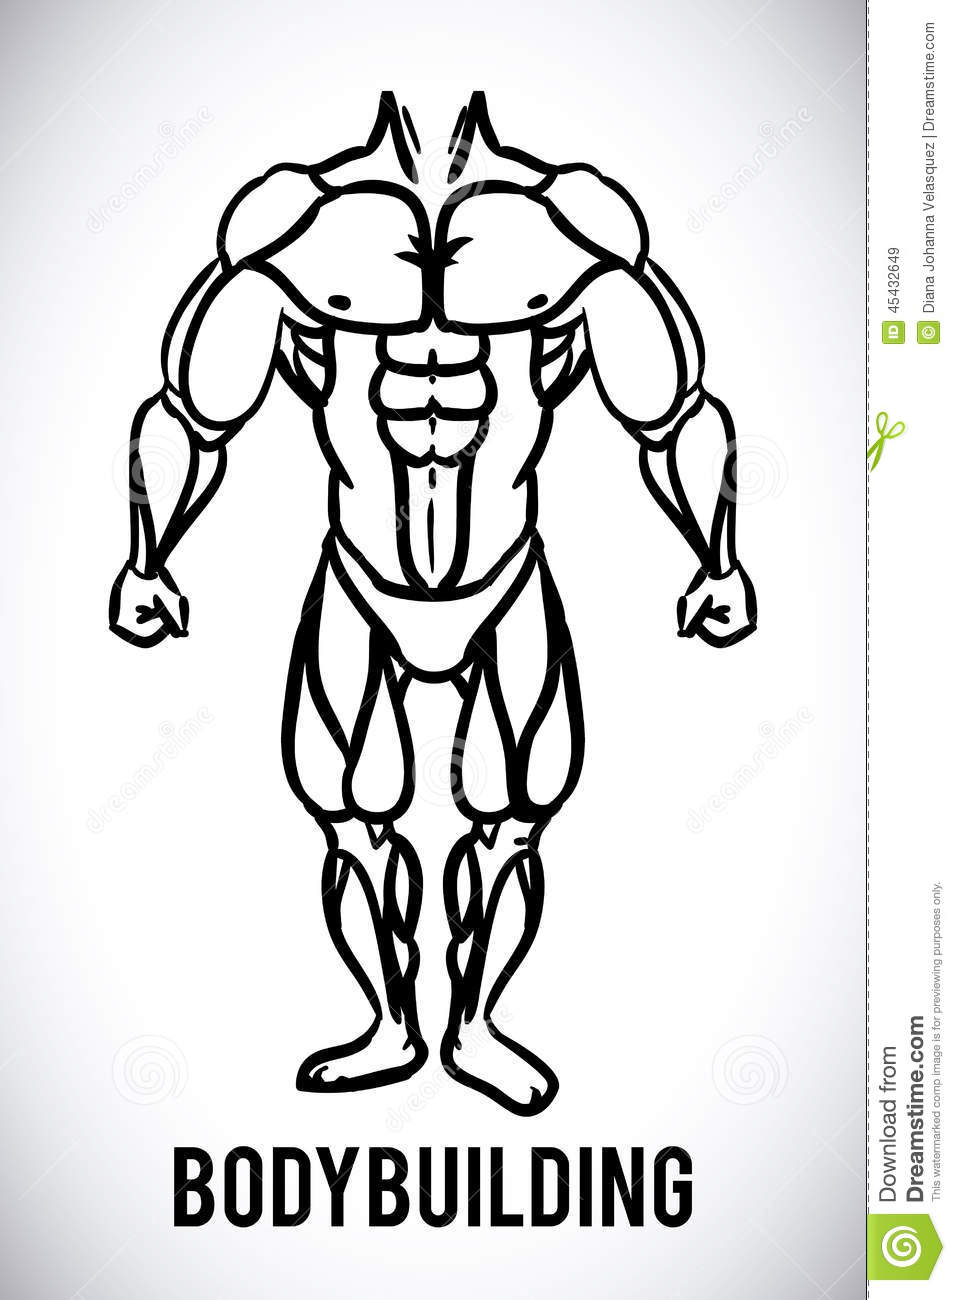 Bodybuilding design stock vector. Illustration of sportsman - 45432649 for Bodybuilding Graphic Design  173lyp